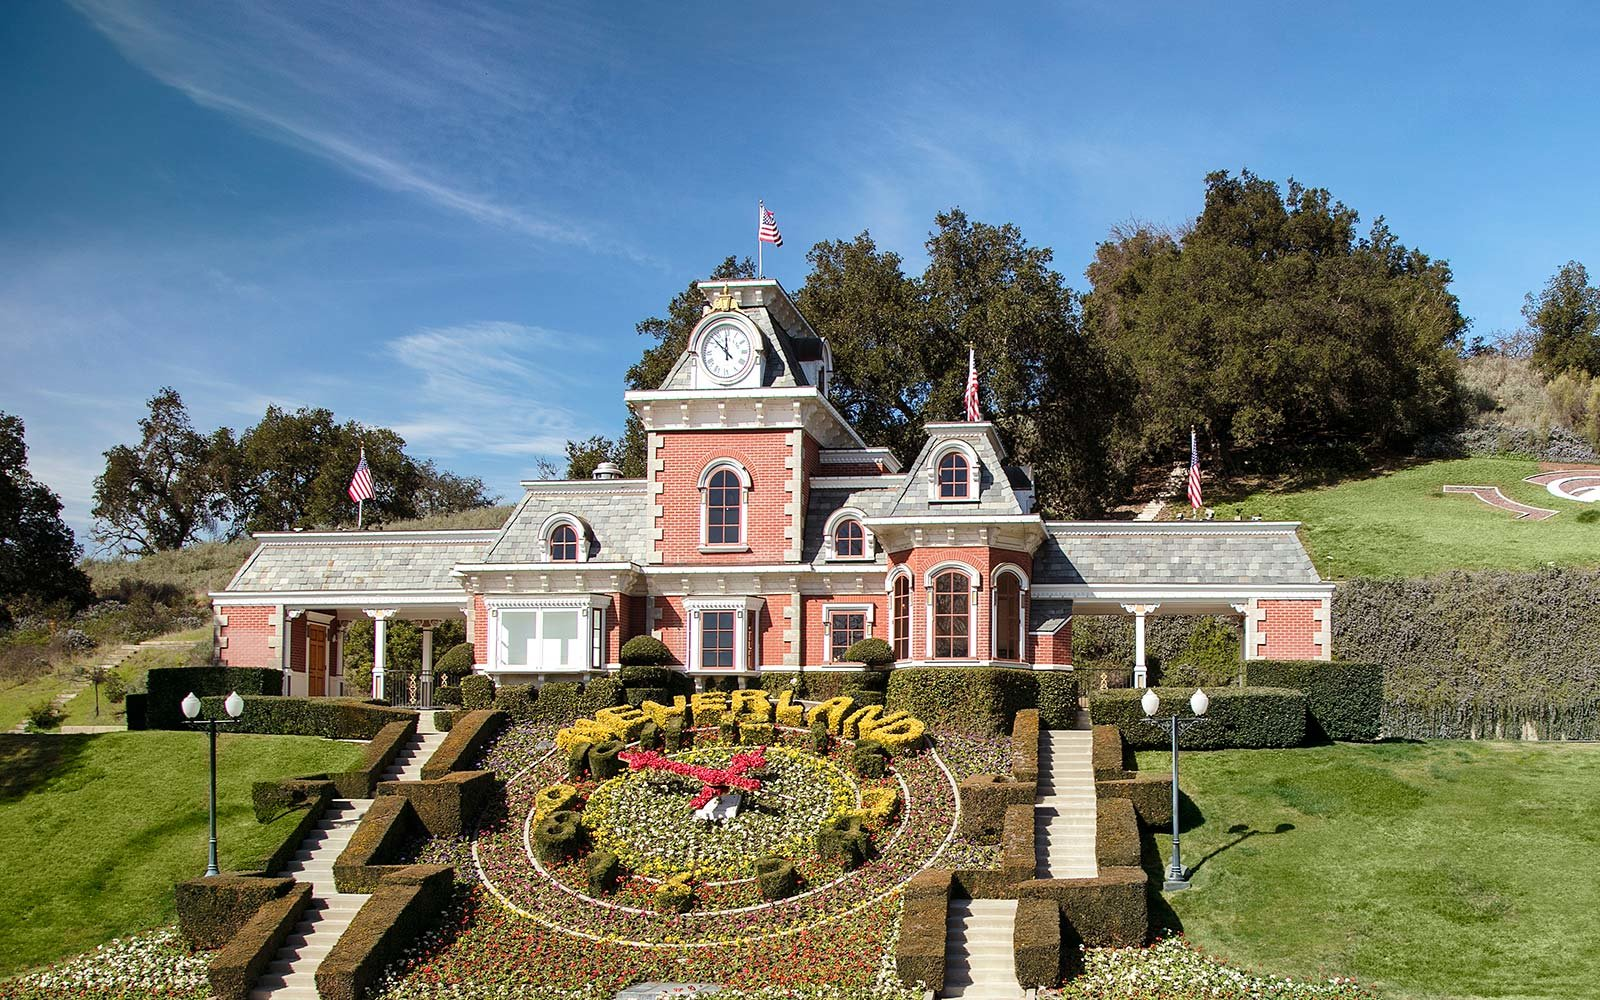 entry-topiary-neverland-ranch-NEVERLAND0317